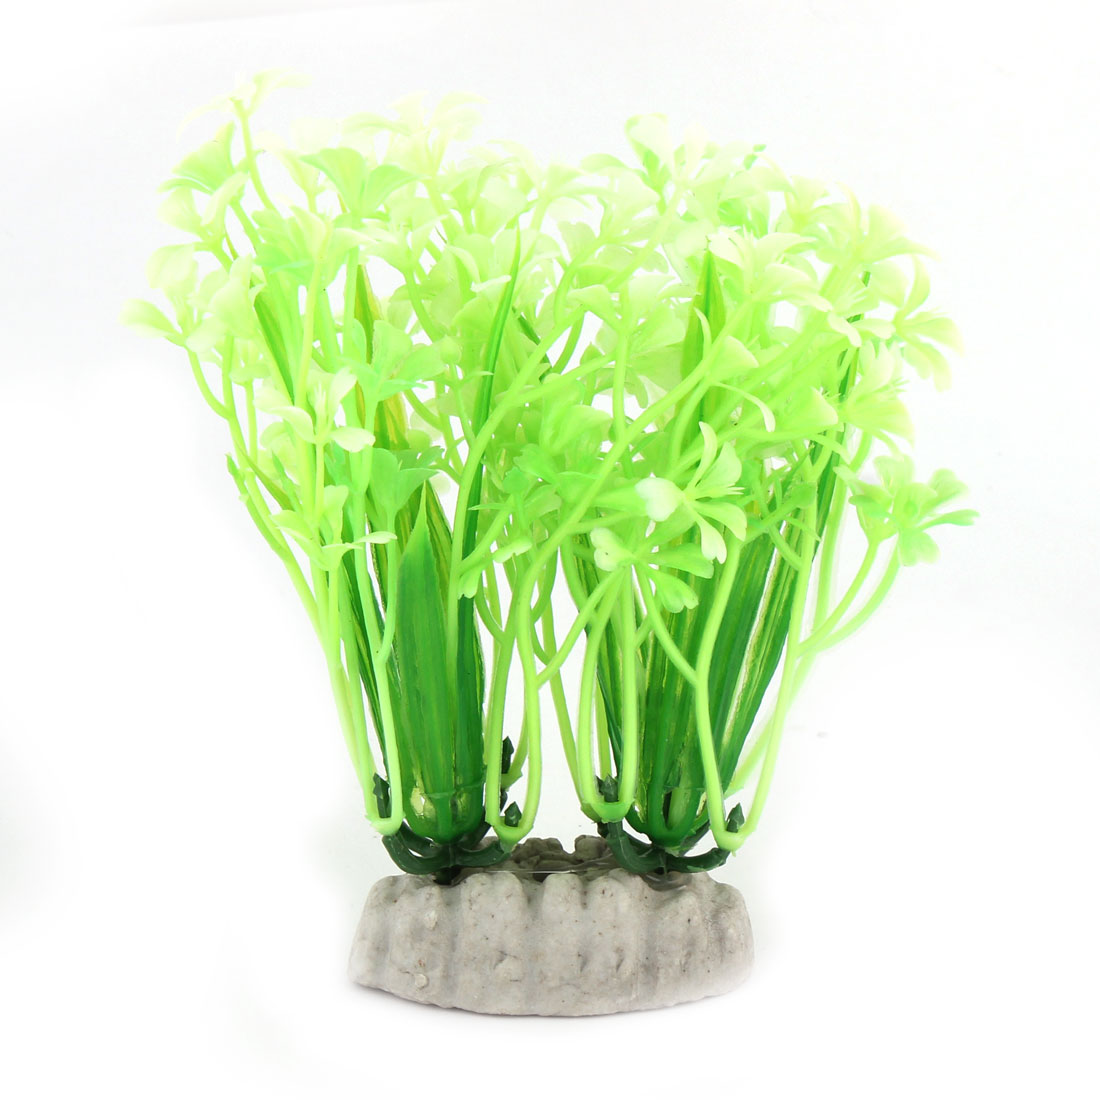 Aquarium Fish Bowl Plastic Underwater Plant Grass Landscaping Light Green 2 PCS